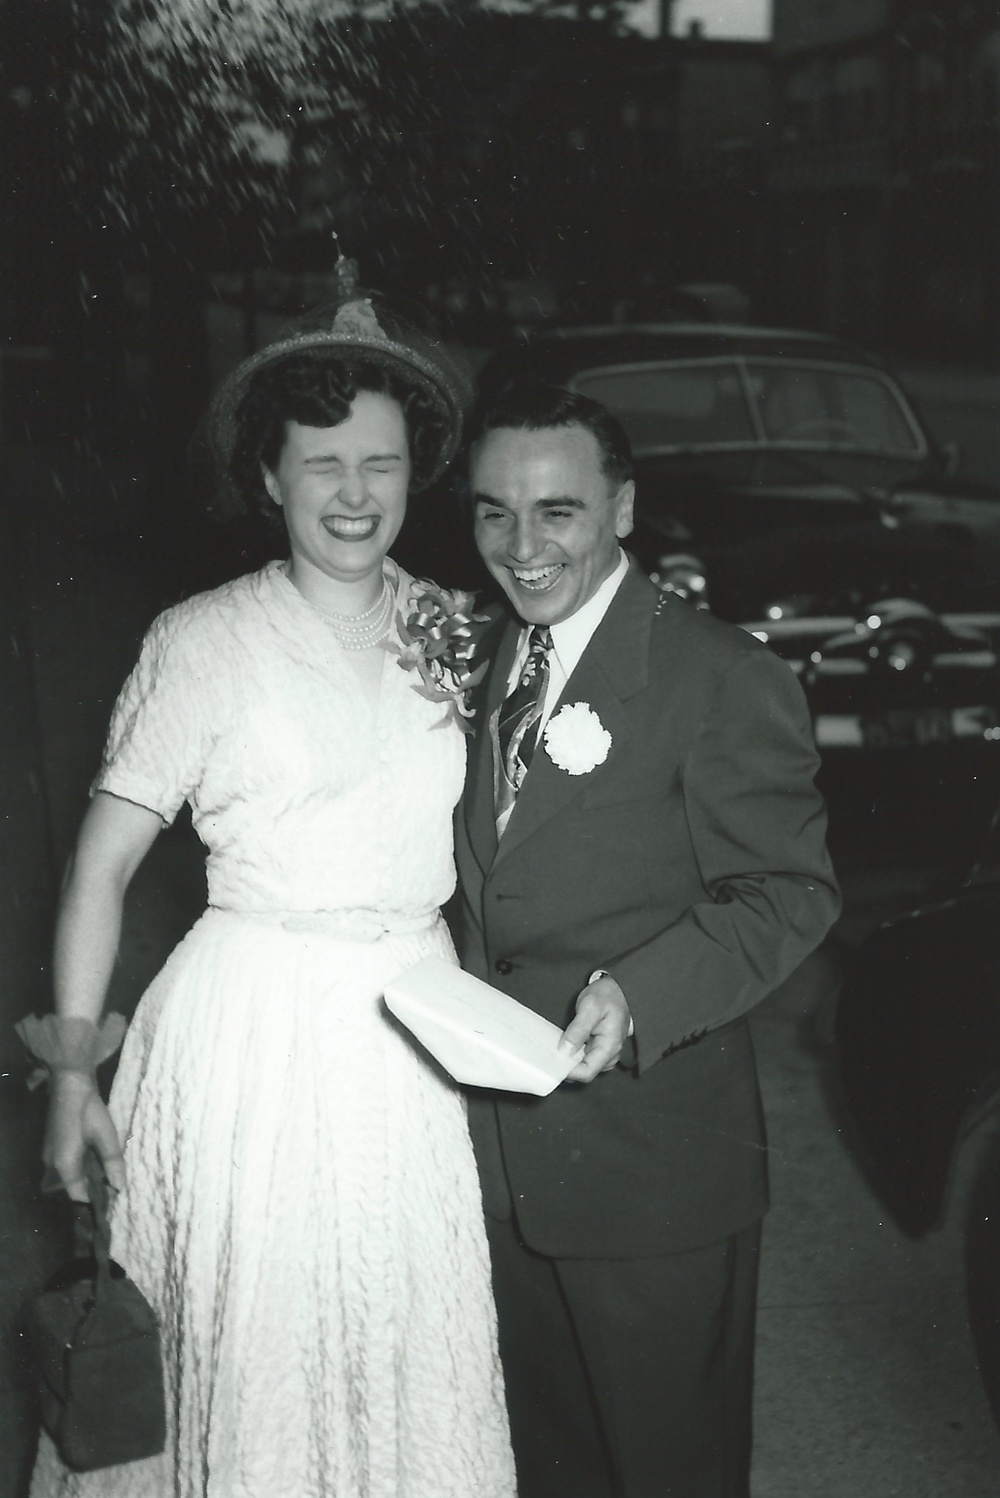 Phyllis and Bob on their wedding day.